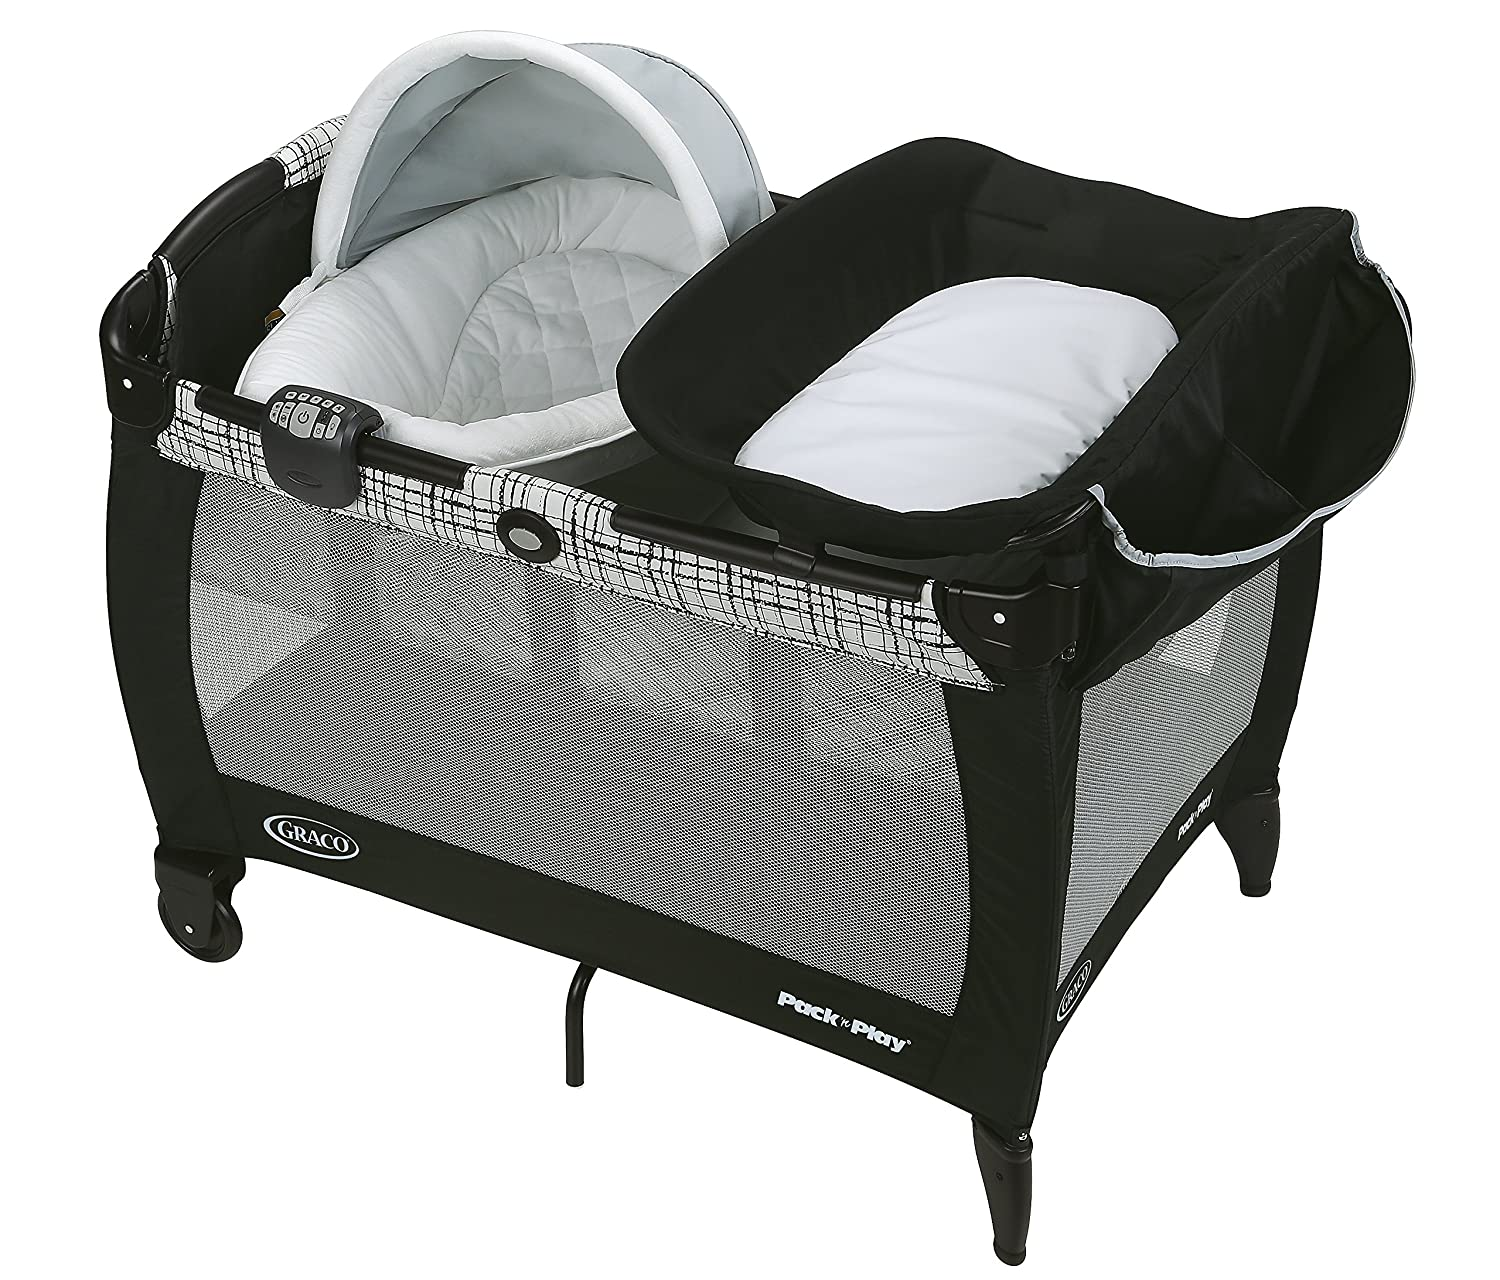 Graco Pack 'n Play Newborn Napper Oasis with Soothe Surround Technology, Teigen Graco Baby 2000719